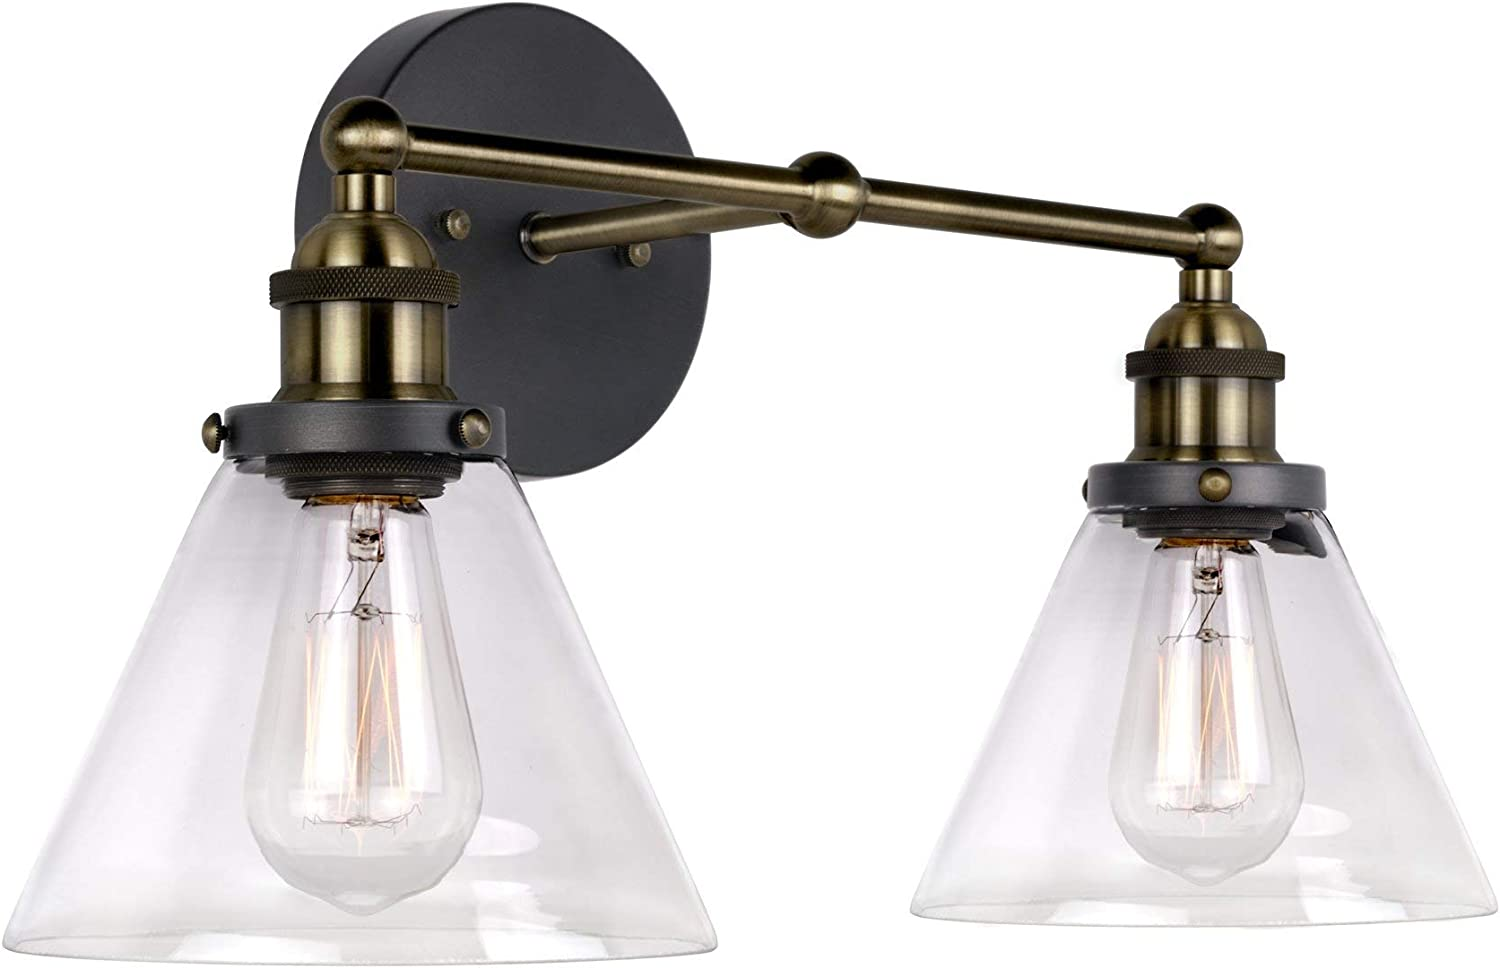 2 Brushed Oil Rubbed Bronze 12V RV Wall Sconce Horse Candle Glass Light